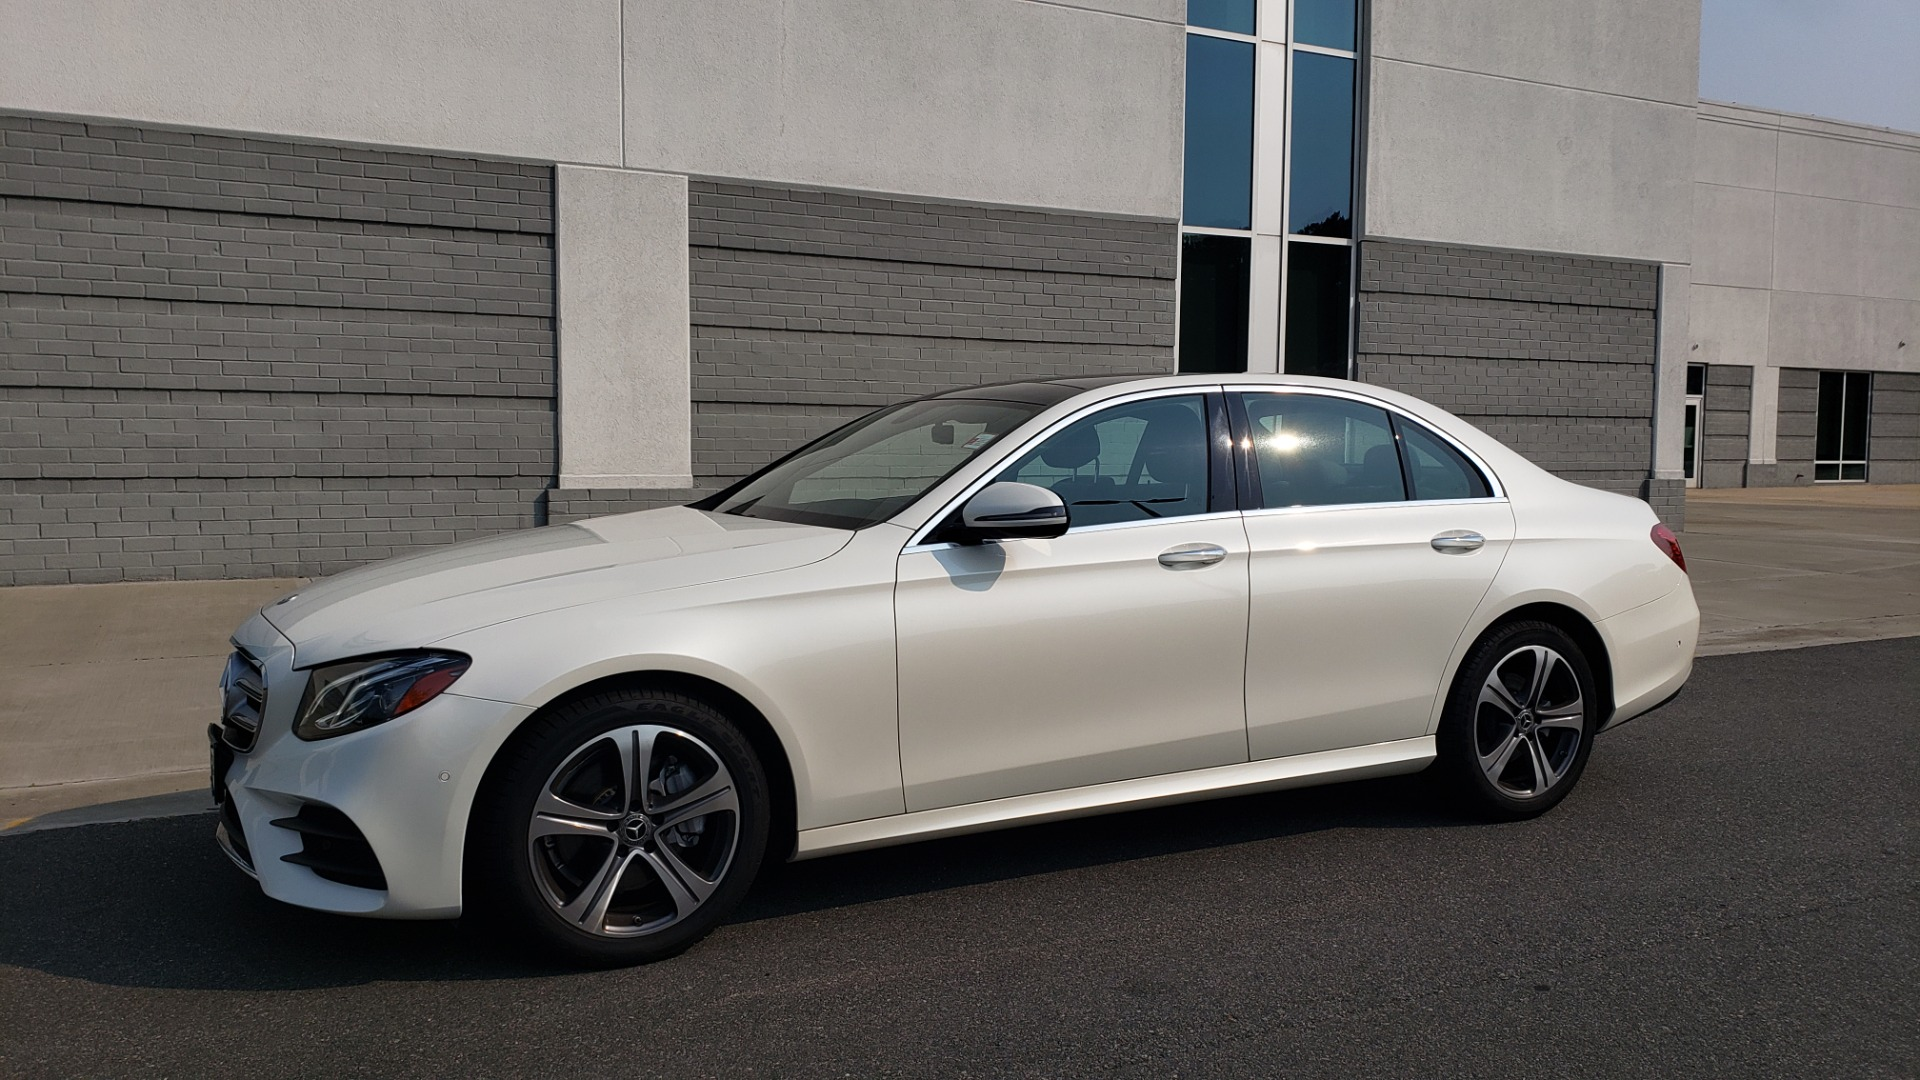 Used 2018 Mercedes-Benz E-CLASS E 300 4MATIC / PREMIUM / NAV / PANO-ROOF / BURMESTER / REARVIEW for sale $41,995 at Formula Imports in Charlotte NC 28227 4